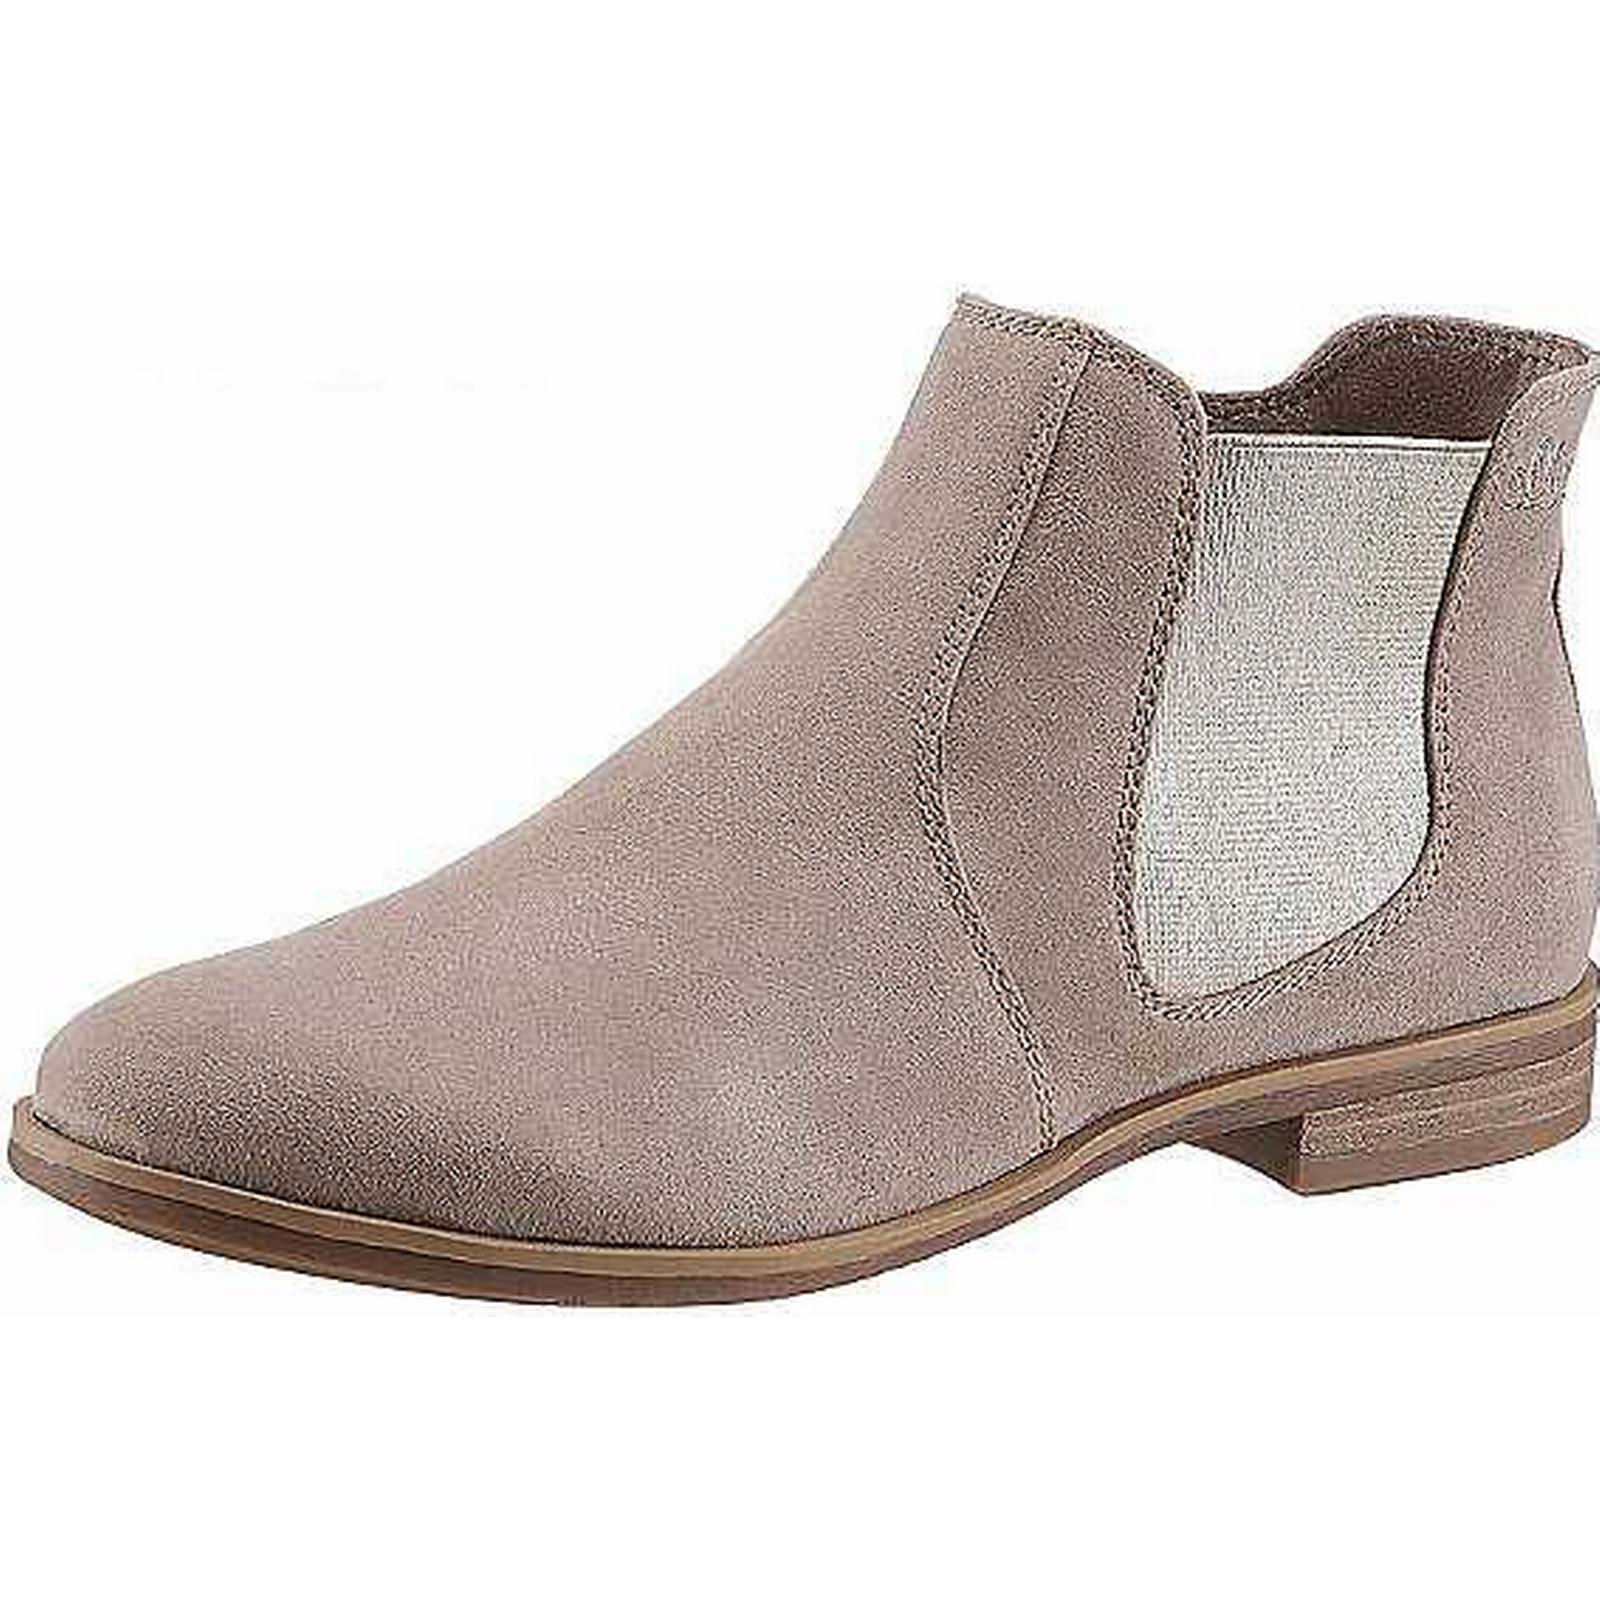 S.Oliver RED LABEL Faux Medium Suede Chelsea Boots by s.Oliver:Gentleman/Lady: Medium Faux price 8e4207